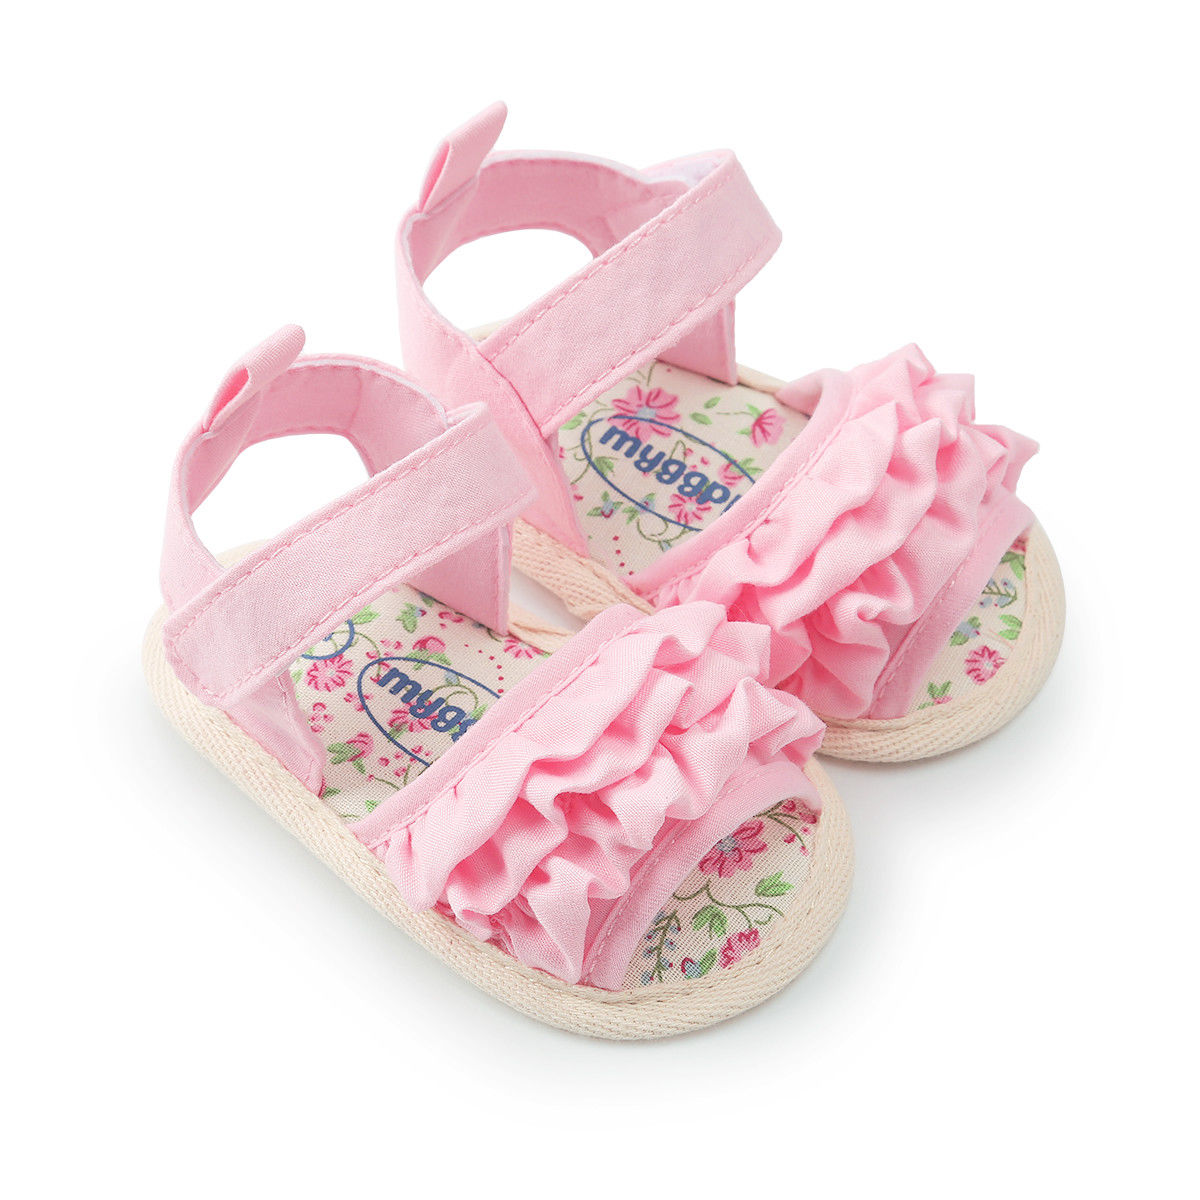 Newborn Baby Girls Flower Shoes Toddler Infant Soft Sole Shoes